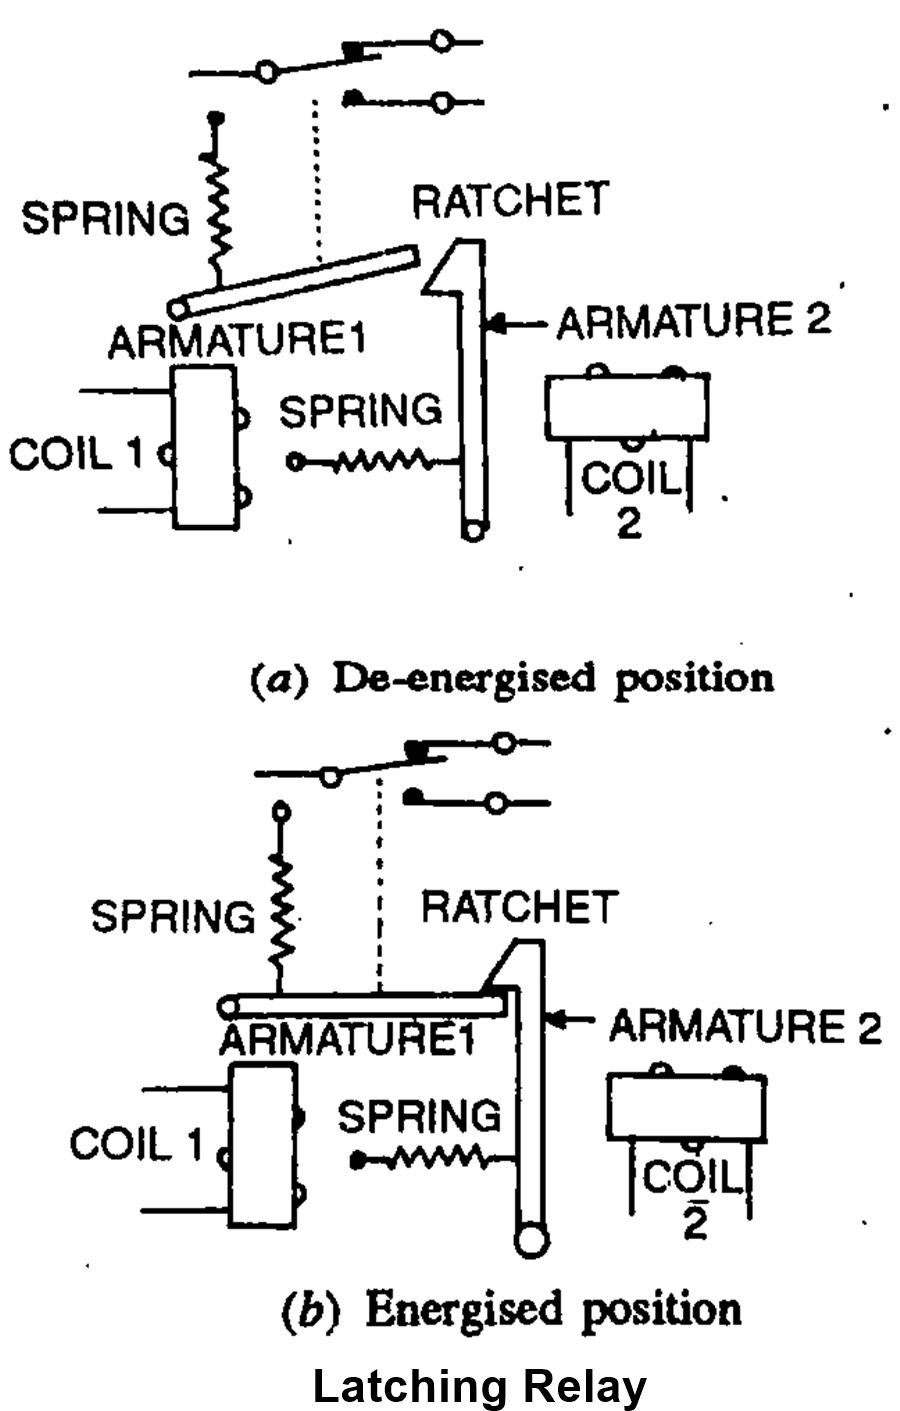 Latching Relay Diagram : latching, relay, diagram, Relay,, Types,, Relay, Working,, Works,, Operation